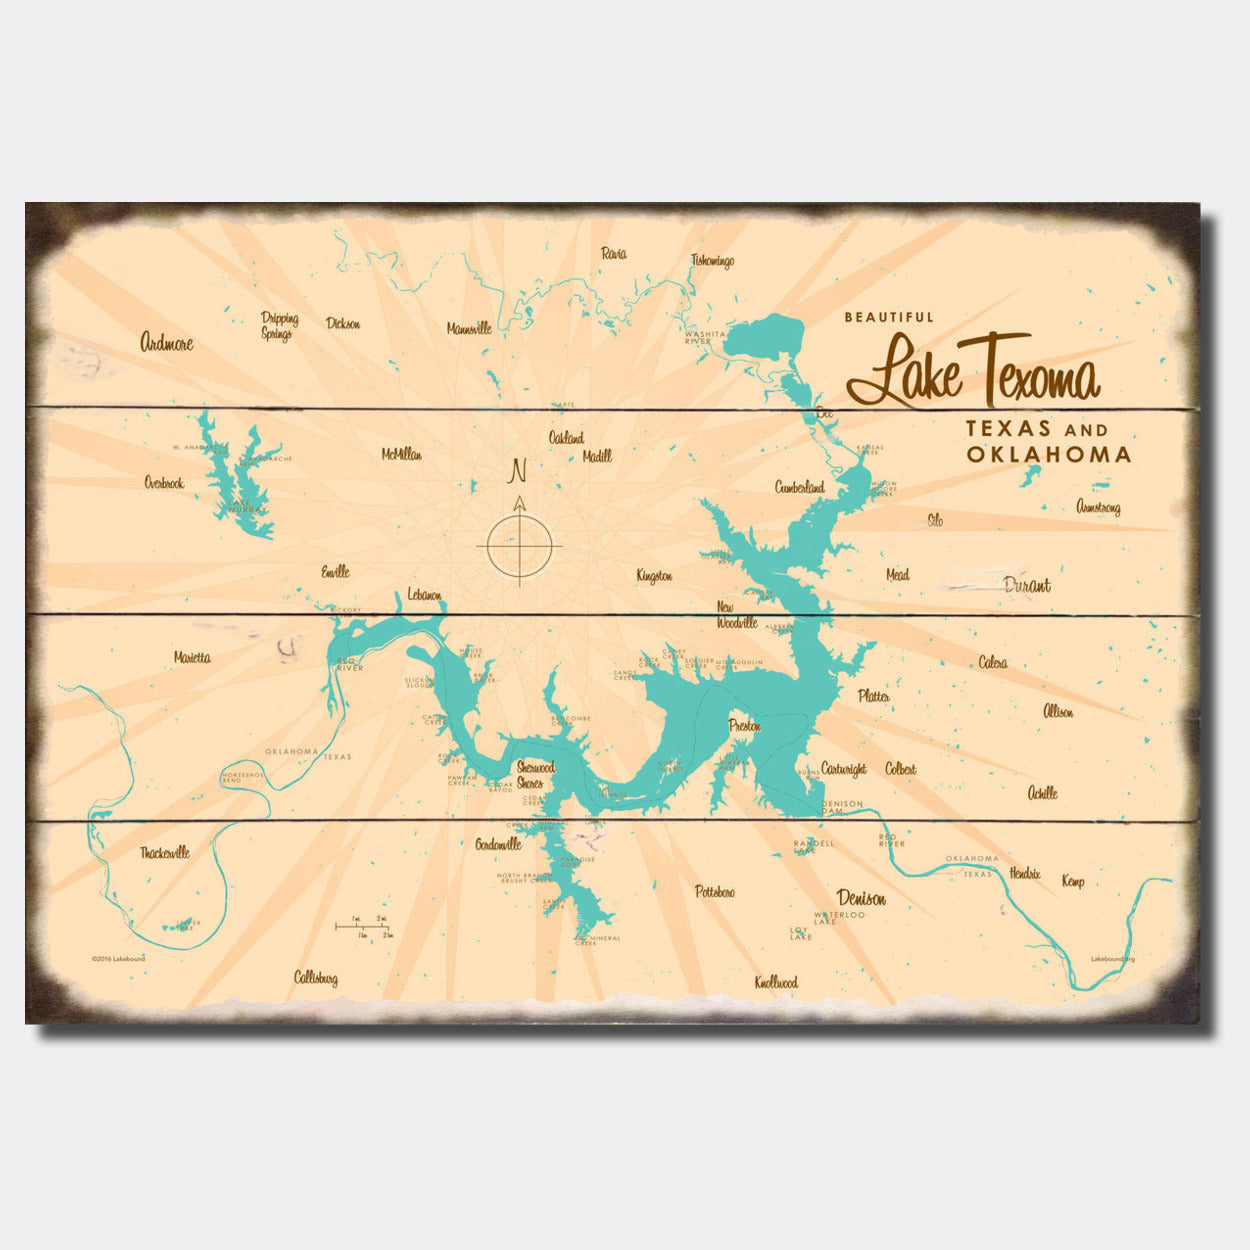 Lake Texoma TX Oklahoma, Sign Map Art